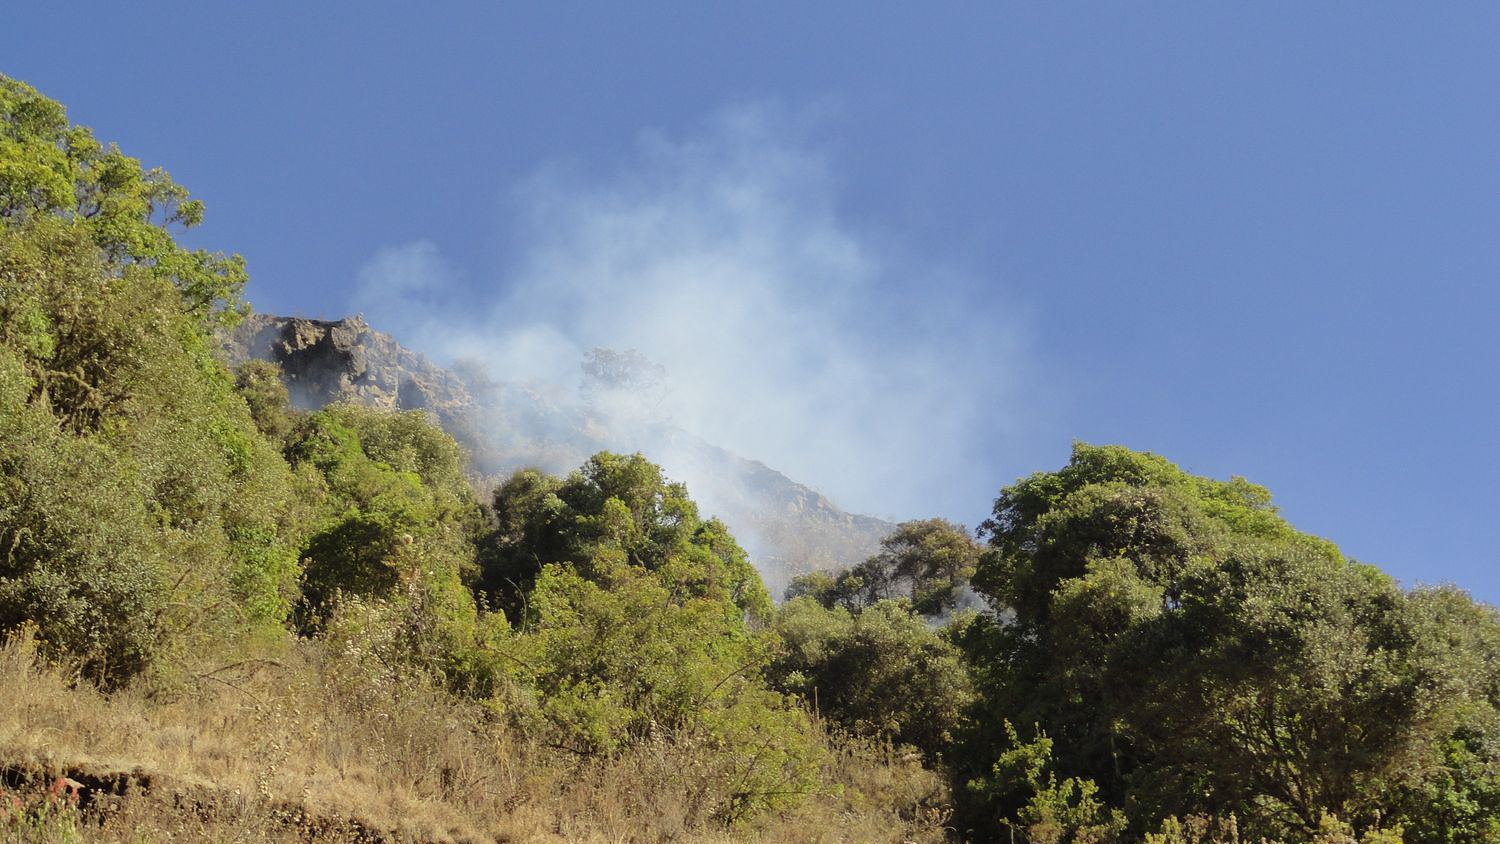 Waldbrand in den Simien Mountains